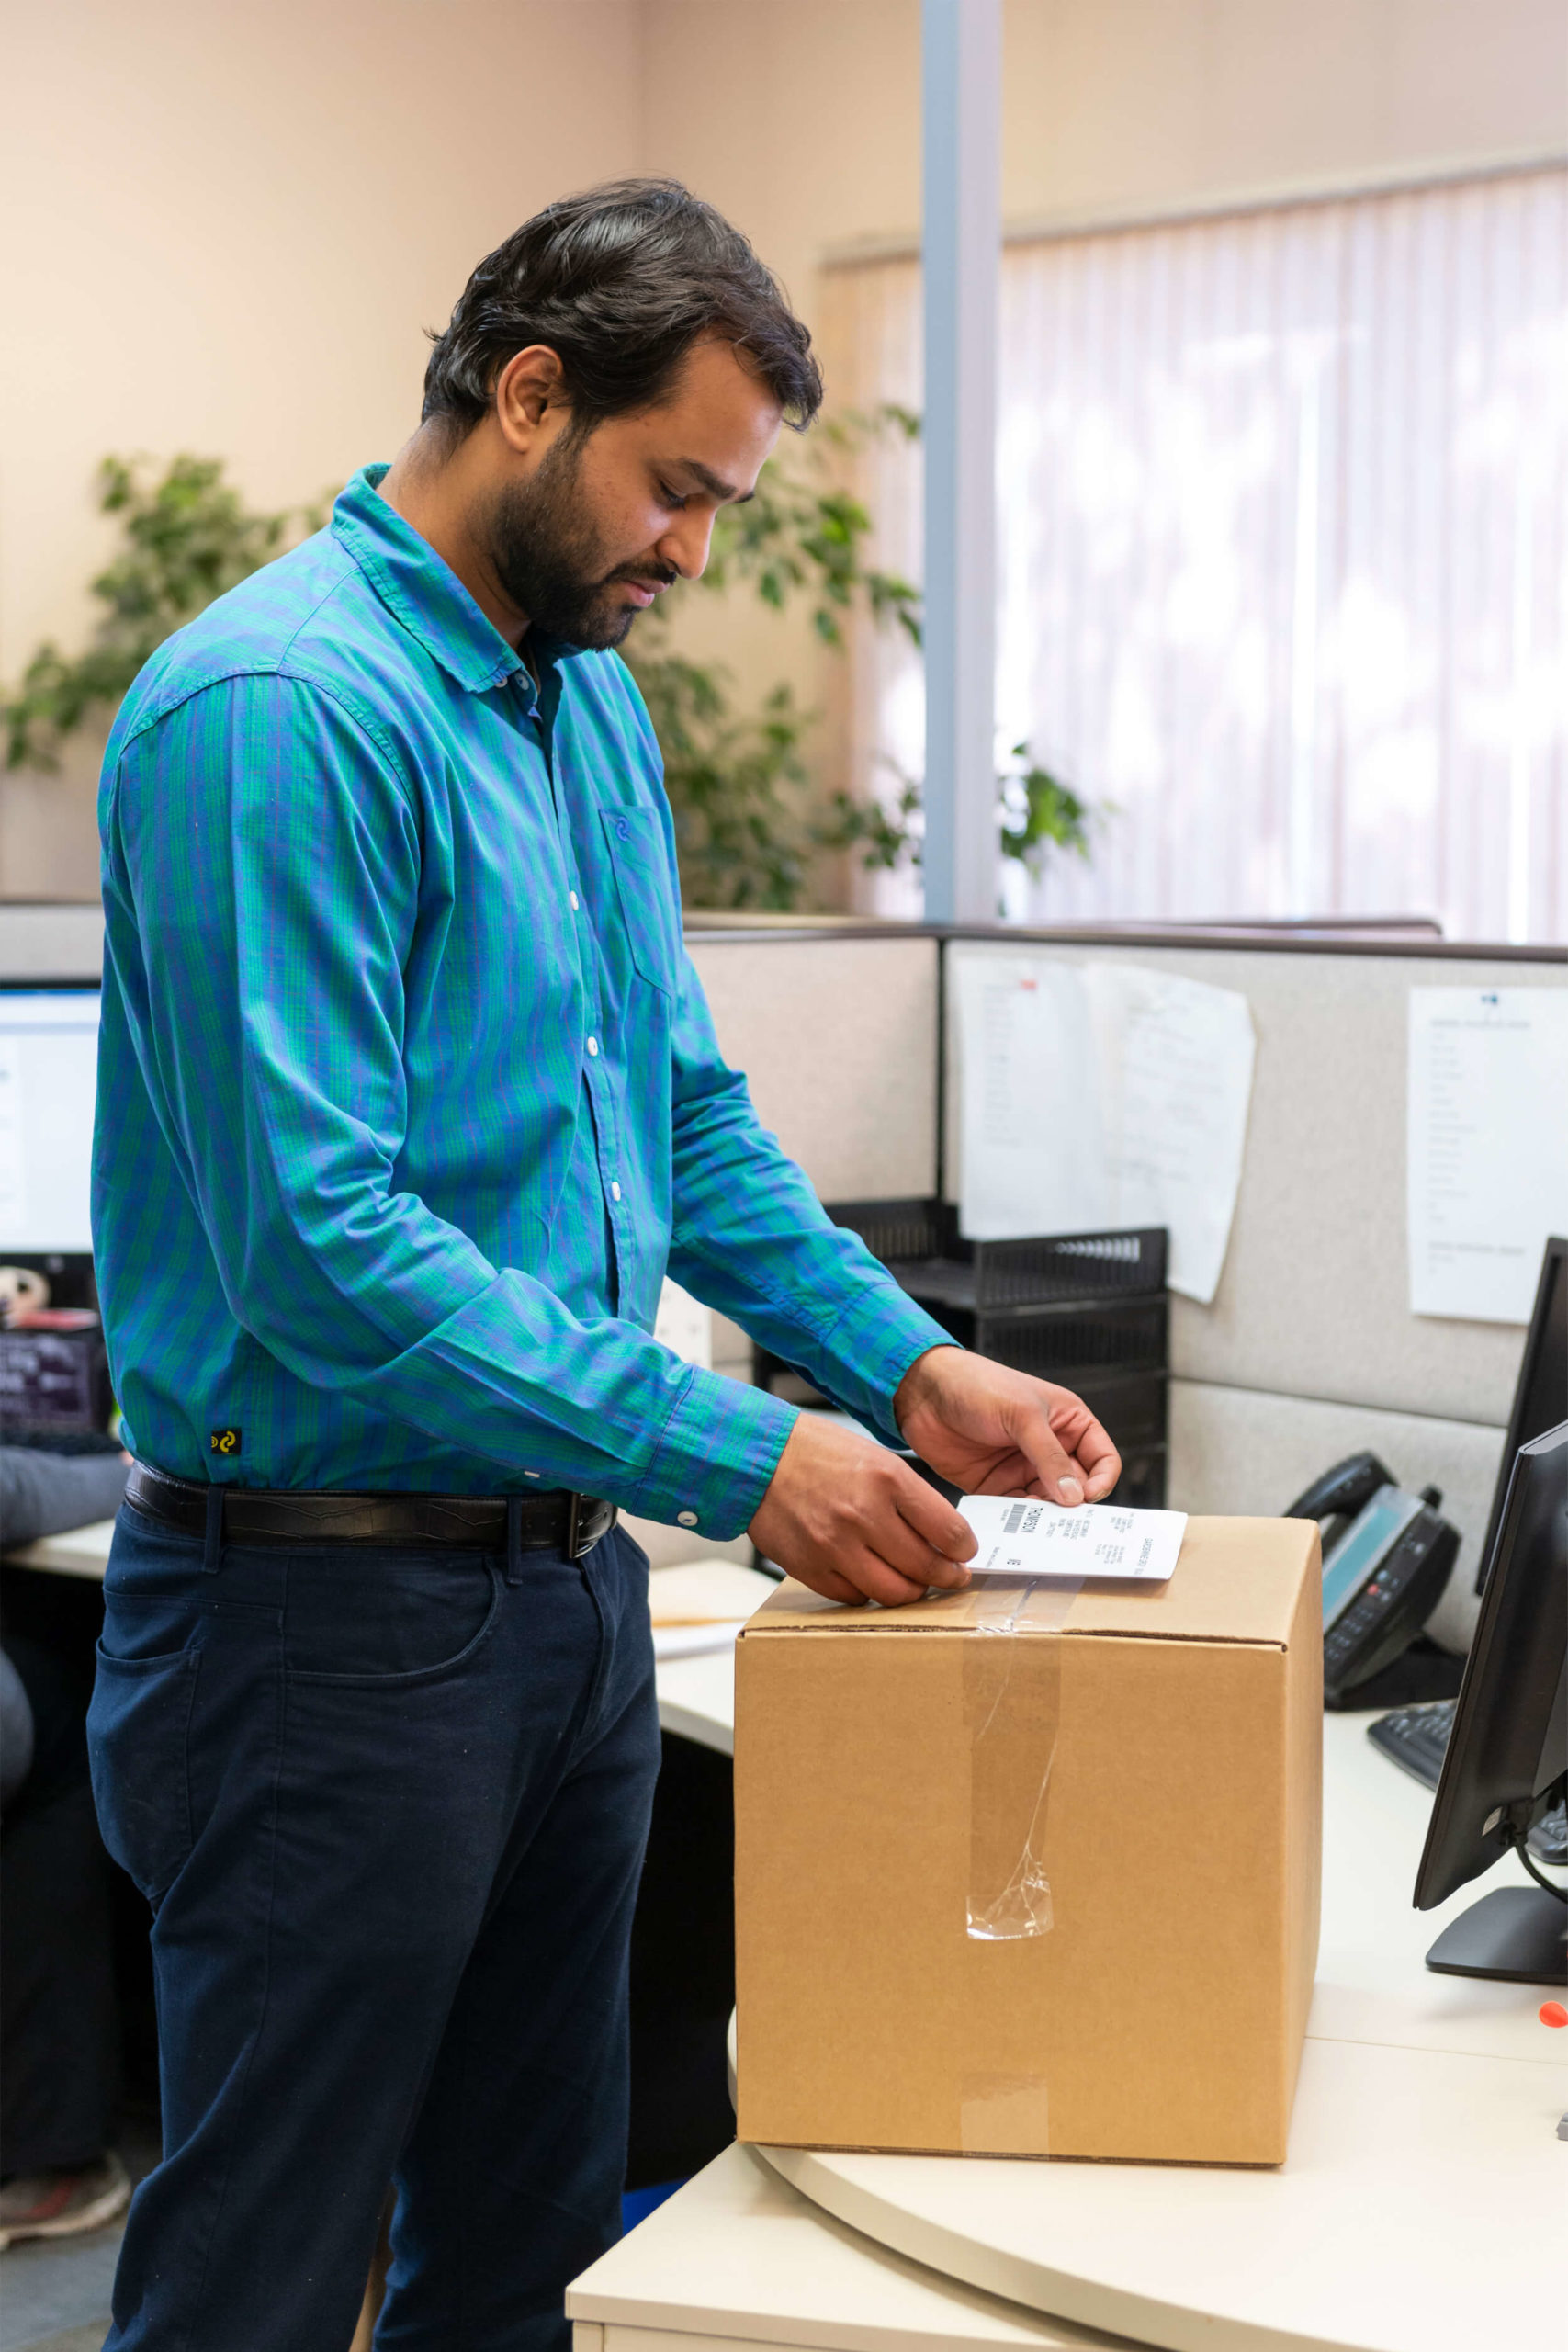 A Man is Pasting Bar Code for Shipping Tracking